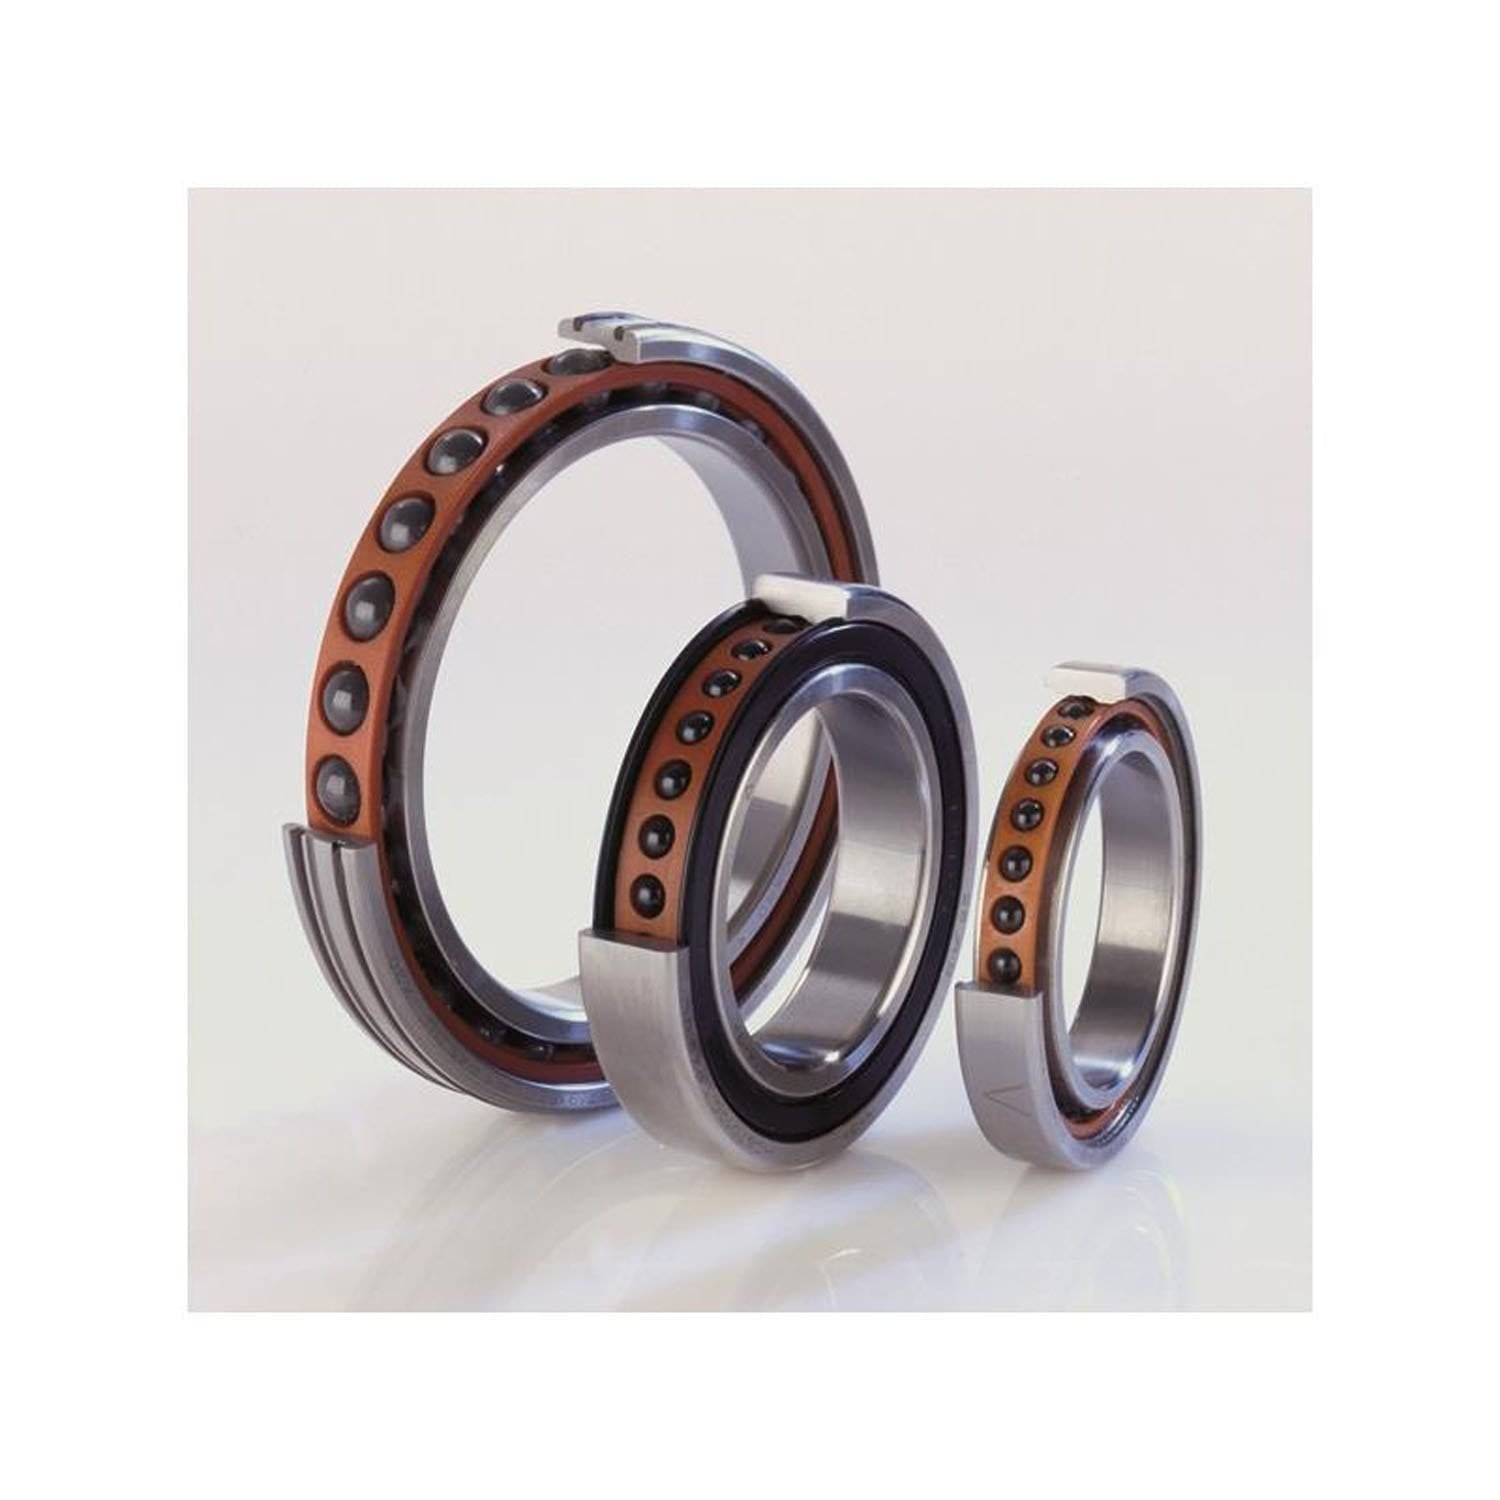 07 CBR1000RR Ceramic Wheel Bearing Kit..Carrozzeria wheels - Woodcraft Technologies - Motorcycle Parts